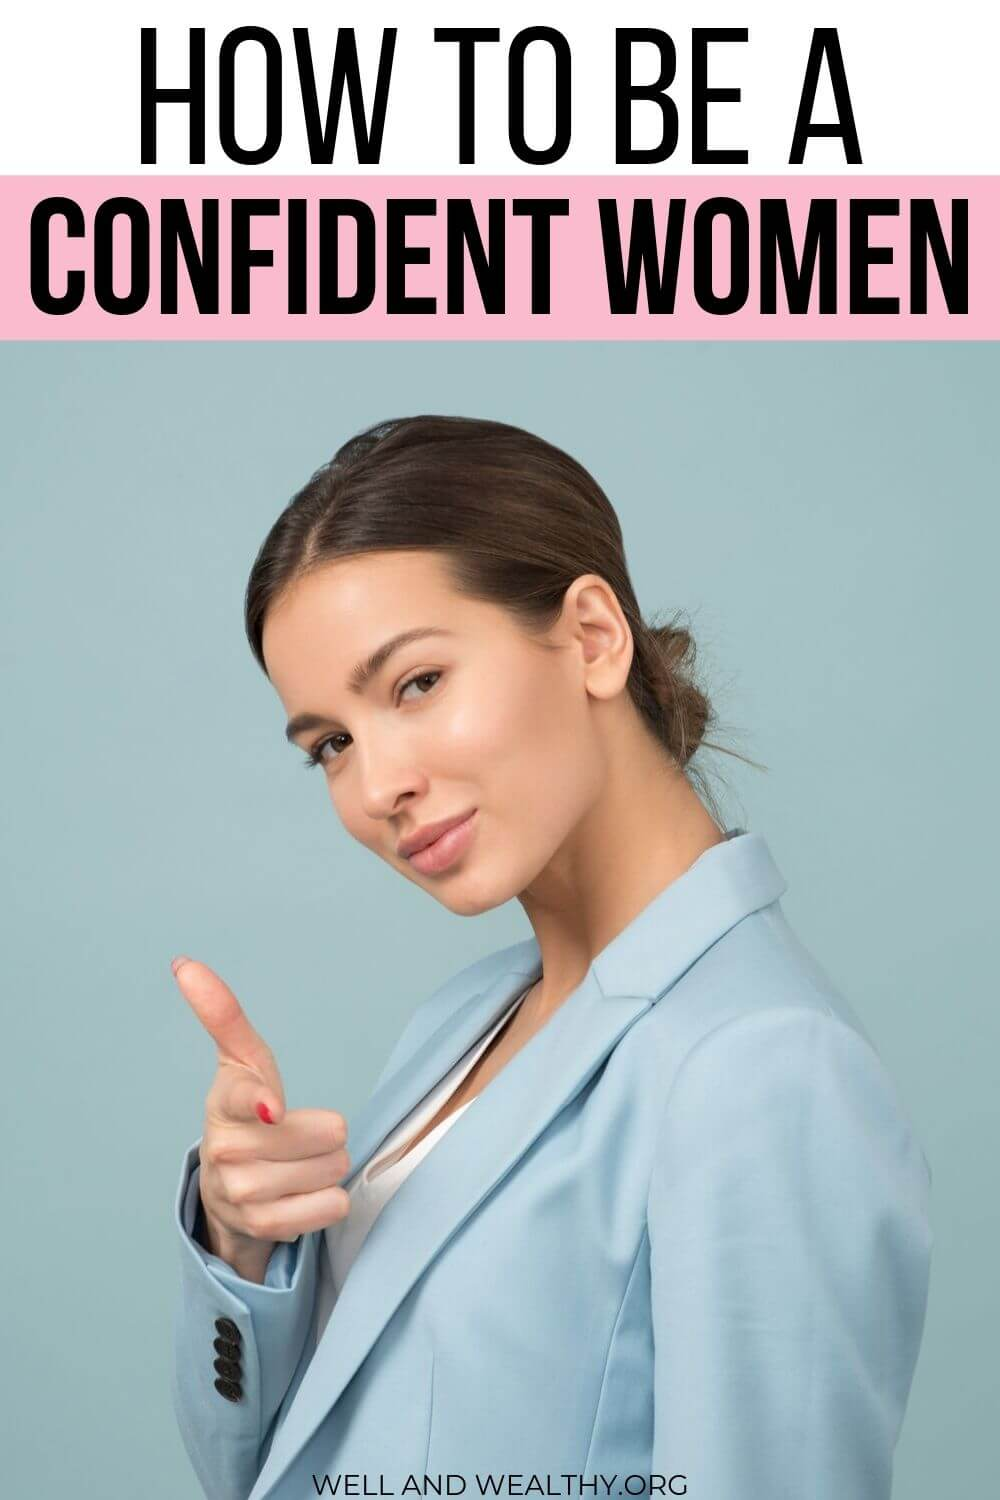 I've always wanted to be one of those super confident women who really get what they want in life and the tips and thoughts in this post have been life changing. No longer am I the shy one, now I go for what I want and succeed! #confidence #confident #success